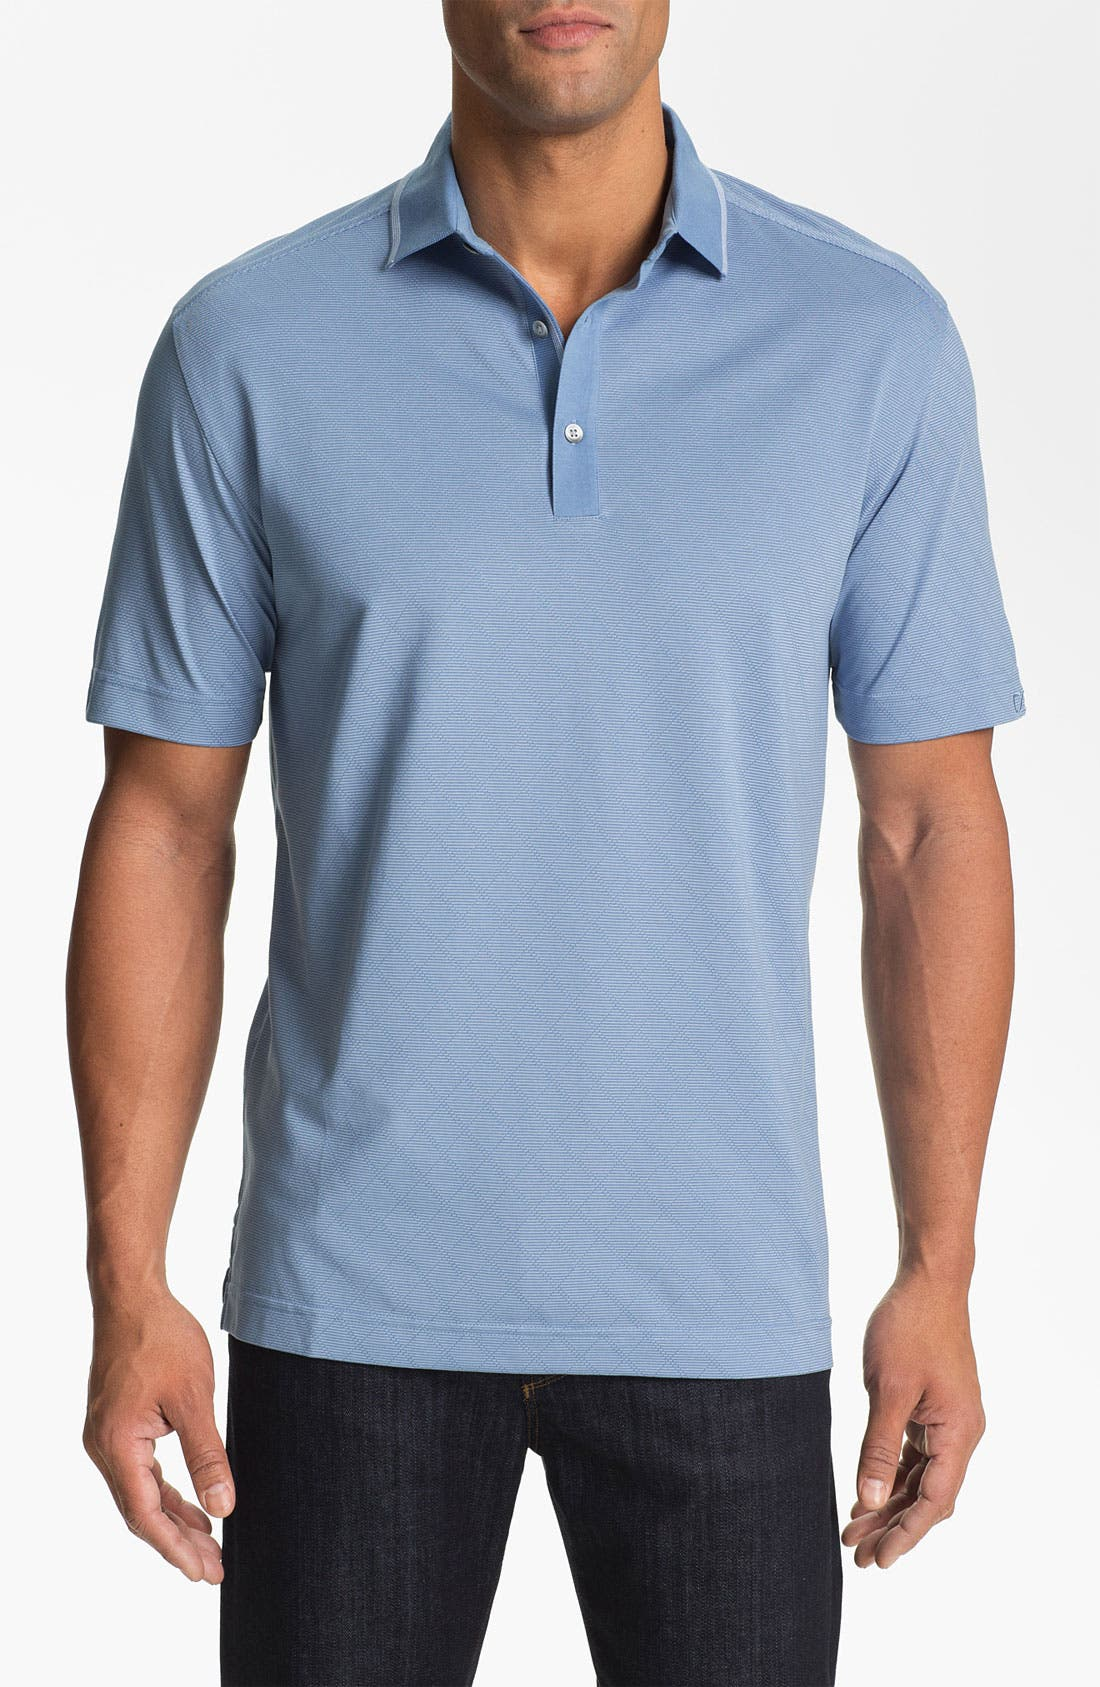 Main Image - Cutter & Buck 'Luxe - Embry' DryTec Golf Polo (Big & Tall)